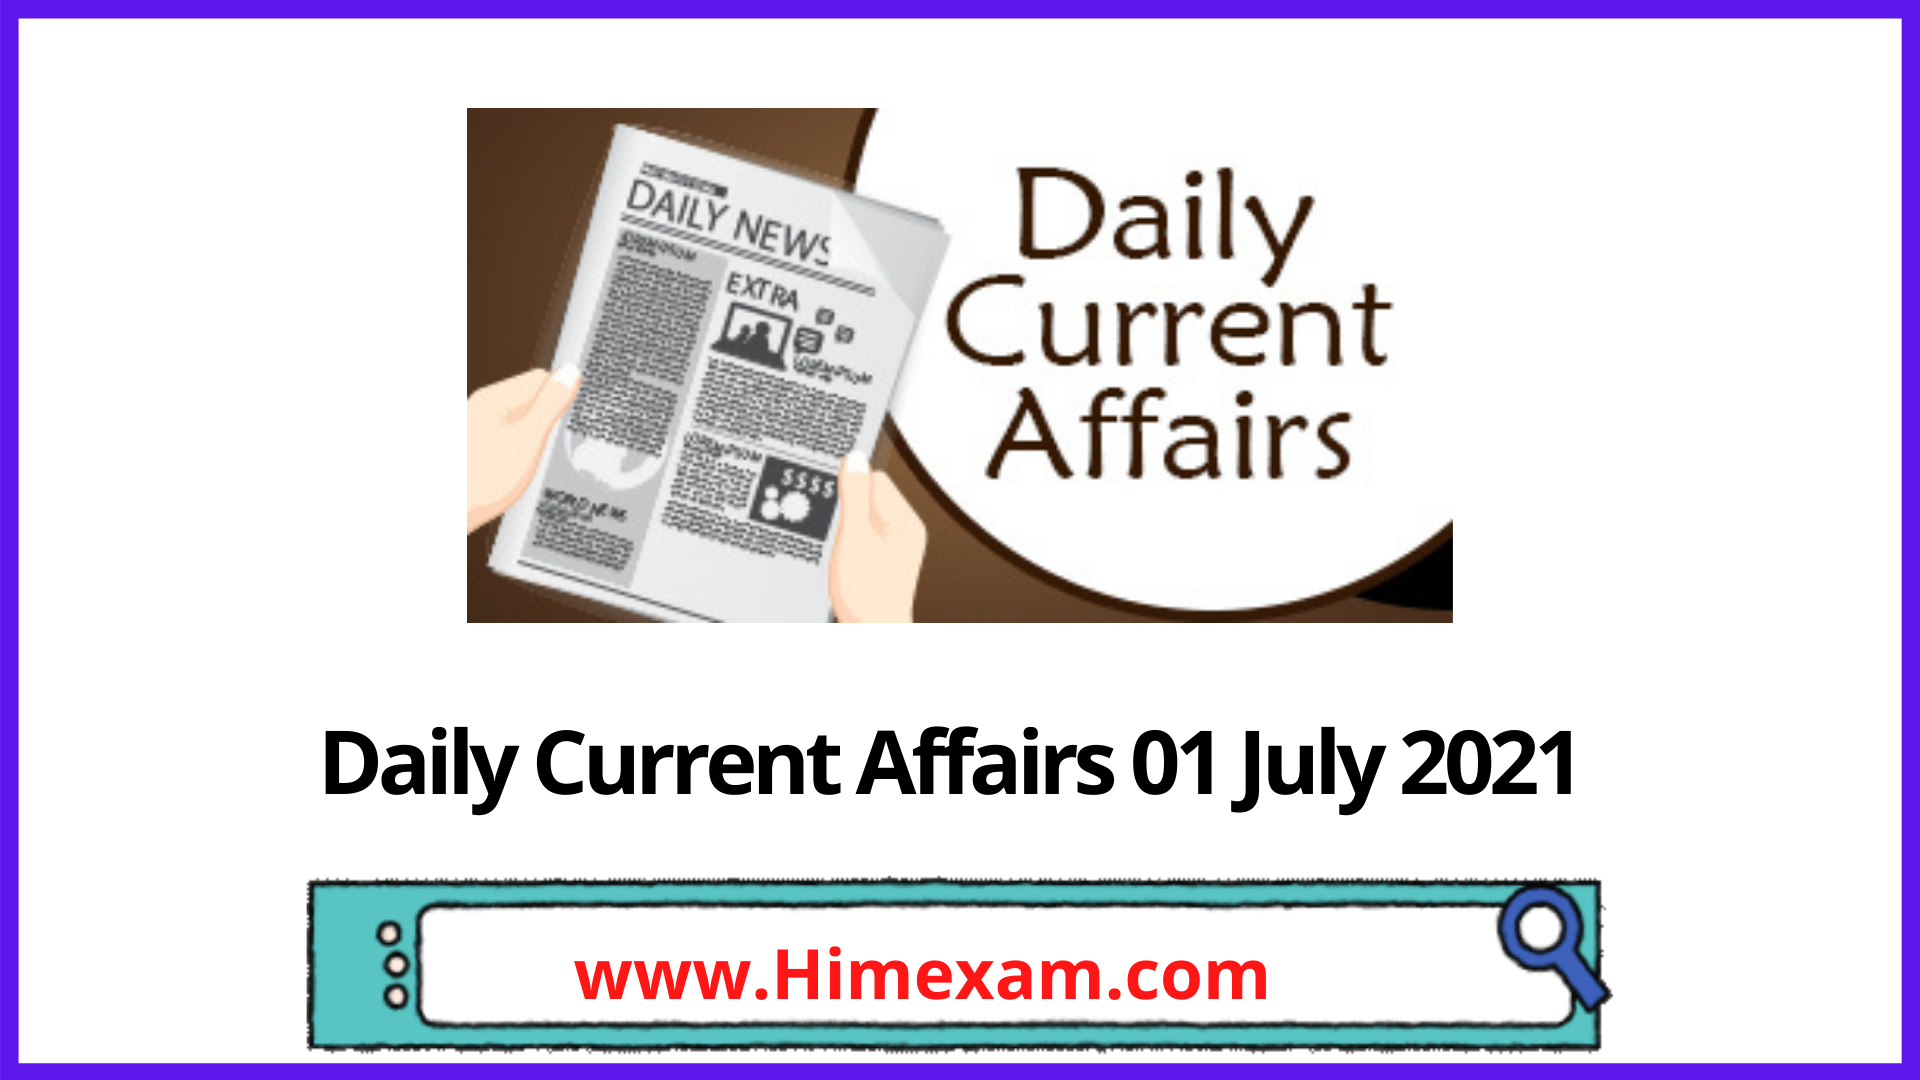 Daily Current Affairs 01 July 2021 In Hindi